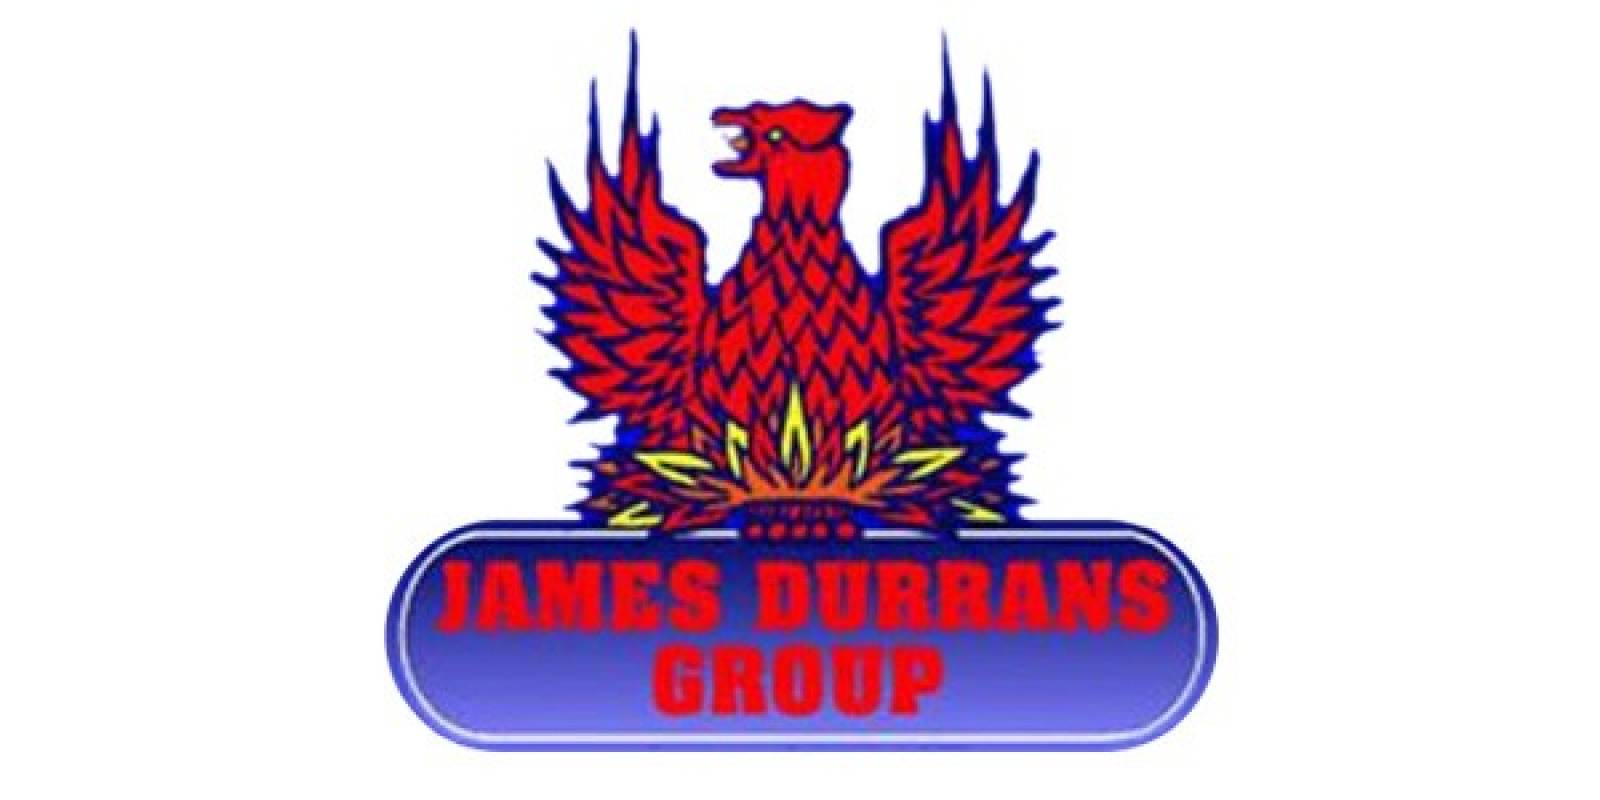 James Drurrans Group